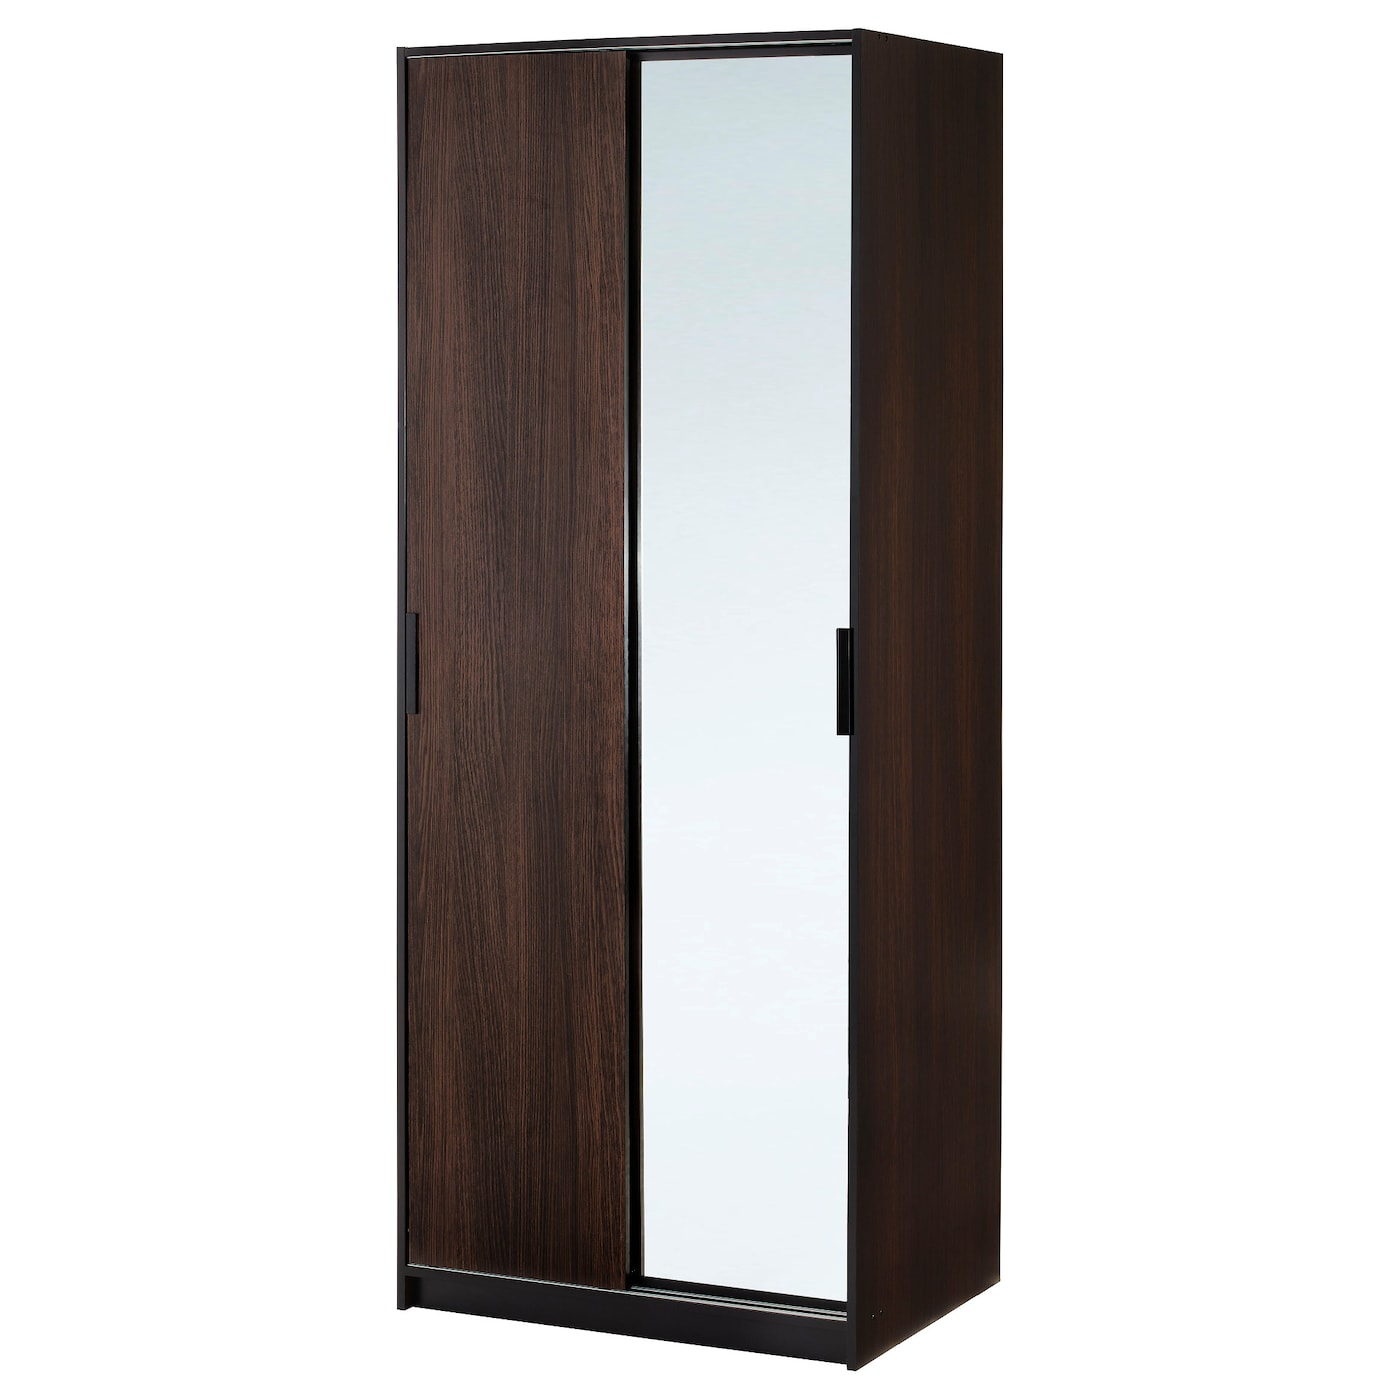 Trysil wardrobe w sliding doors 4 drawers white 118x61x202 for Porte pliante miroir